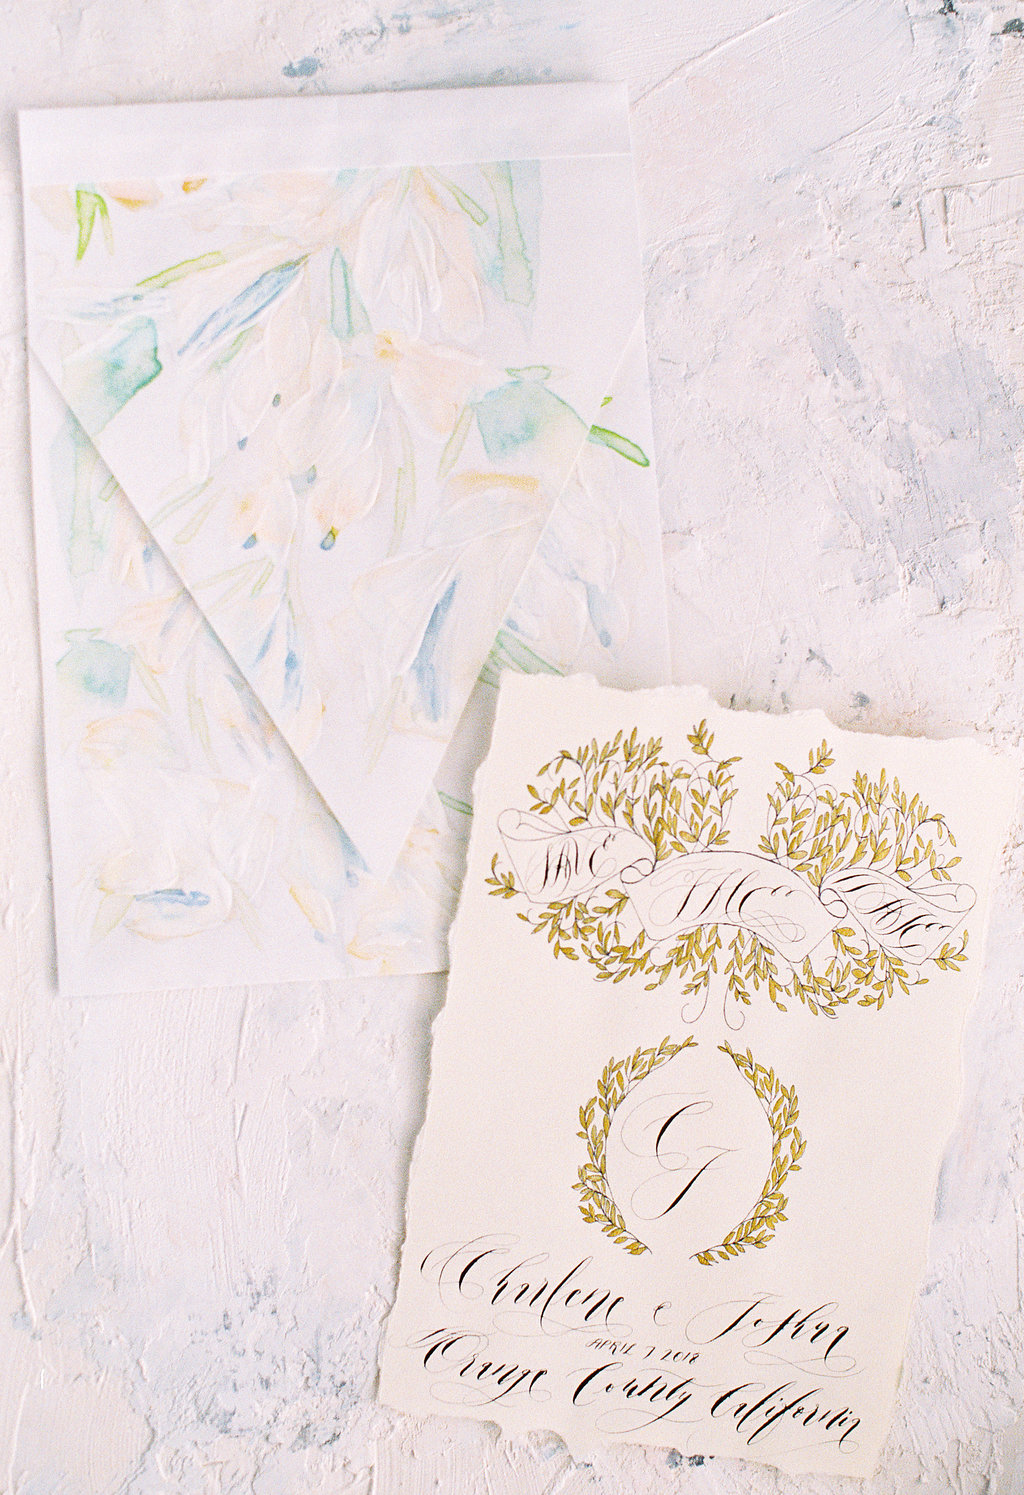 Handmade large bespoke envelope with pale green and calm blue floral watercolour designs and hand painted acrylic paint brushstrokes